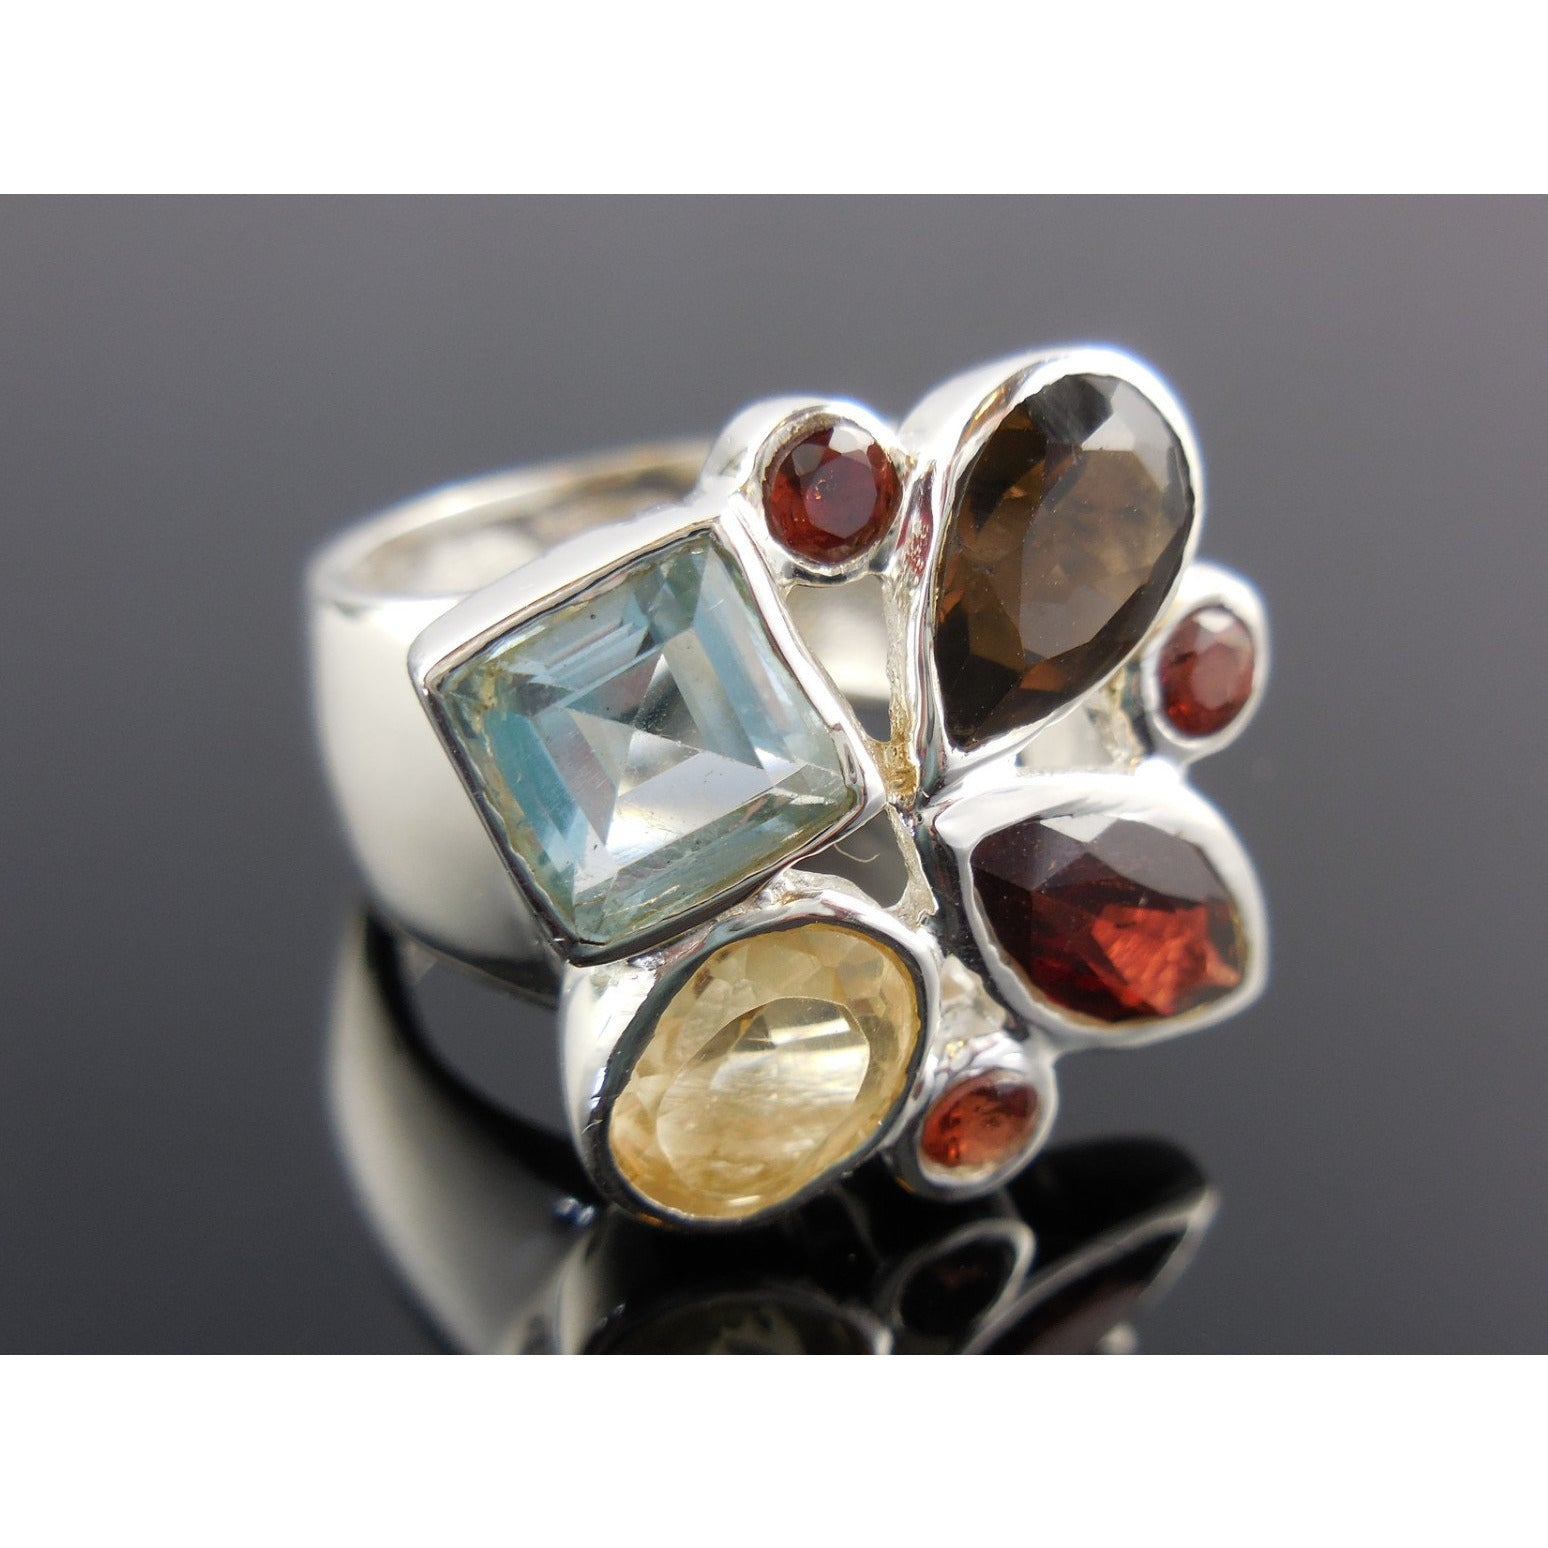 Garnet, Citrine, Smoky Quartz, & Blue Topaz Gemstone Sterling Silver Ring - Size 6.0